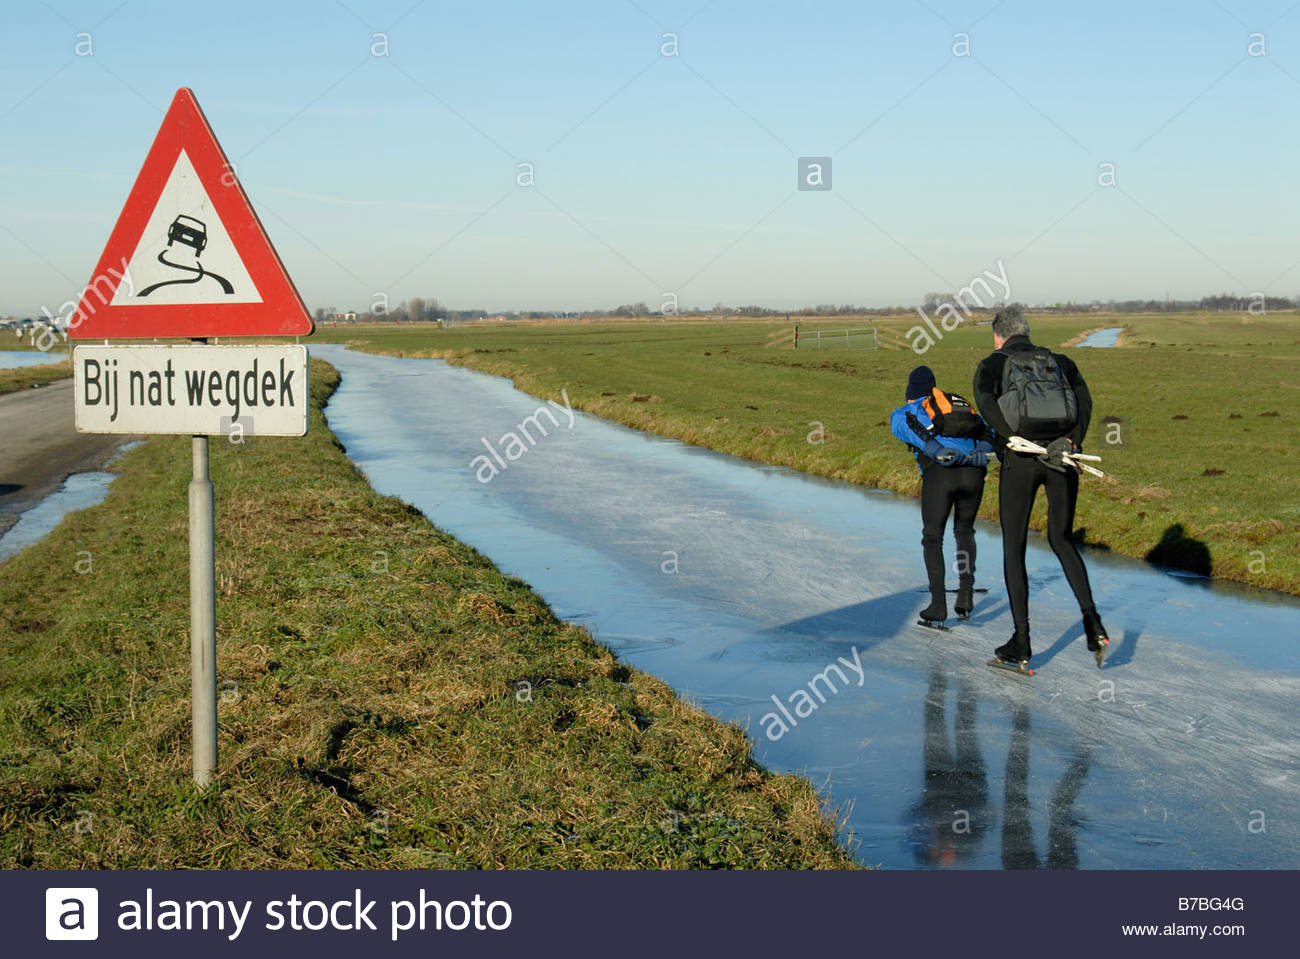 ransdorp-the-netherlands-skaters-skate-through-the-polder-landscape-B7BG4G.jpg